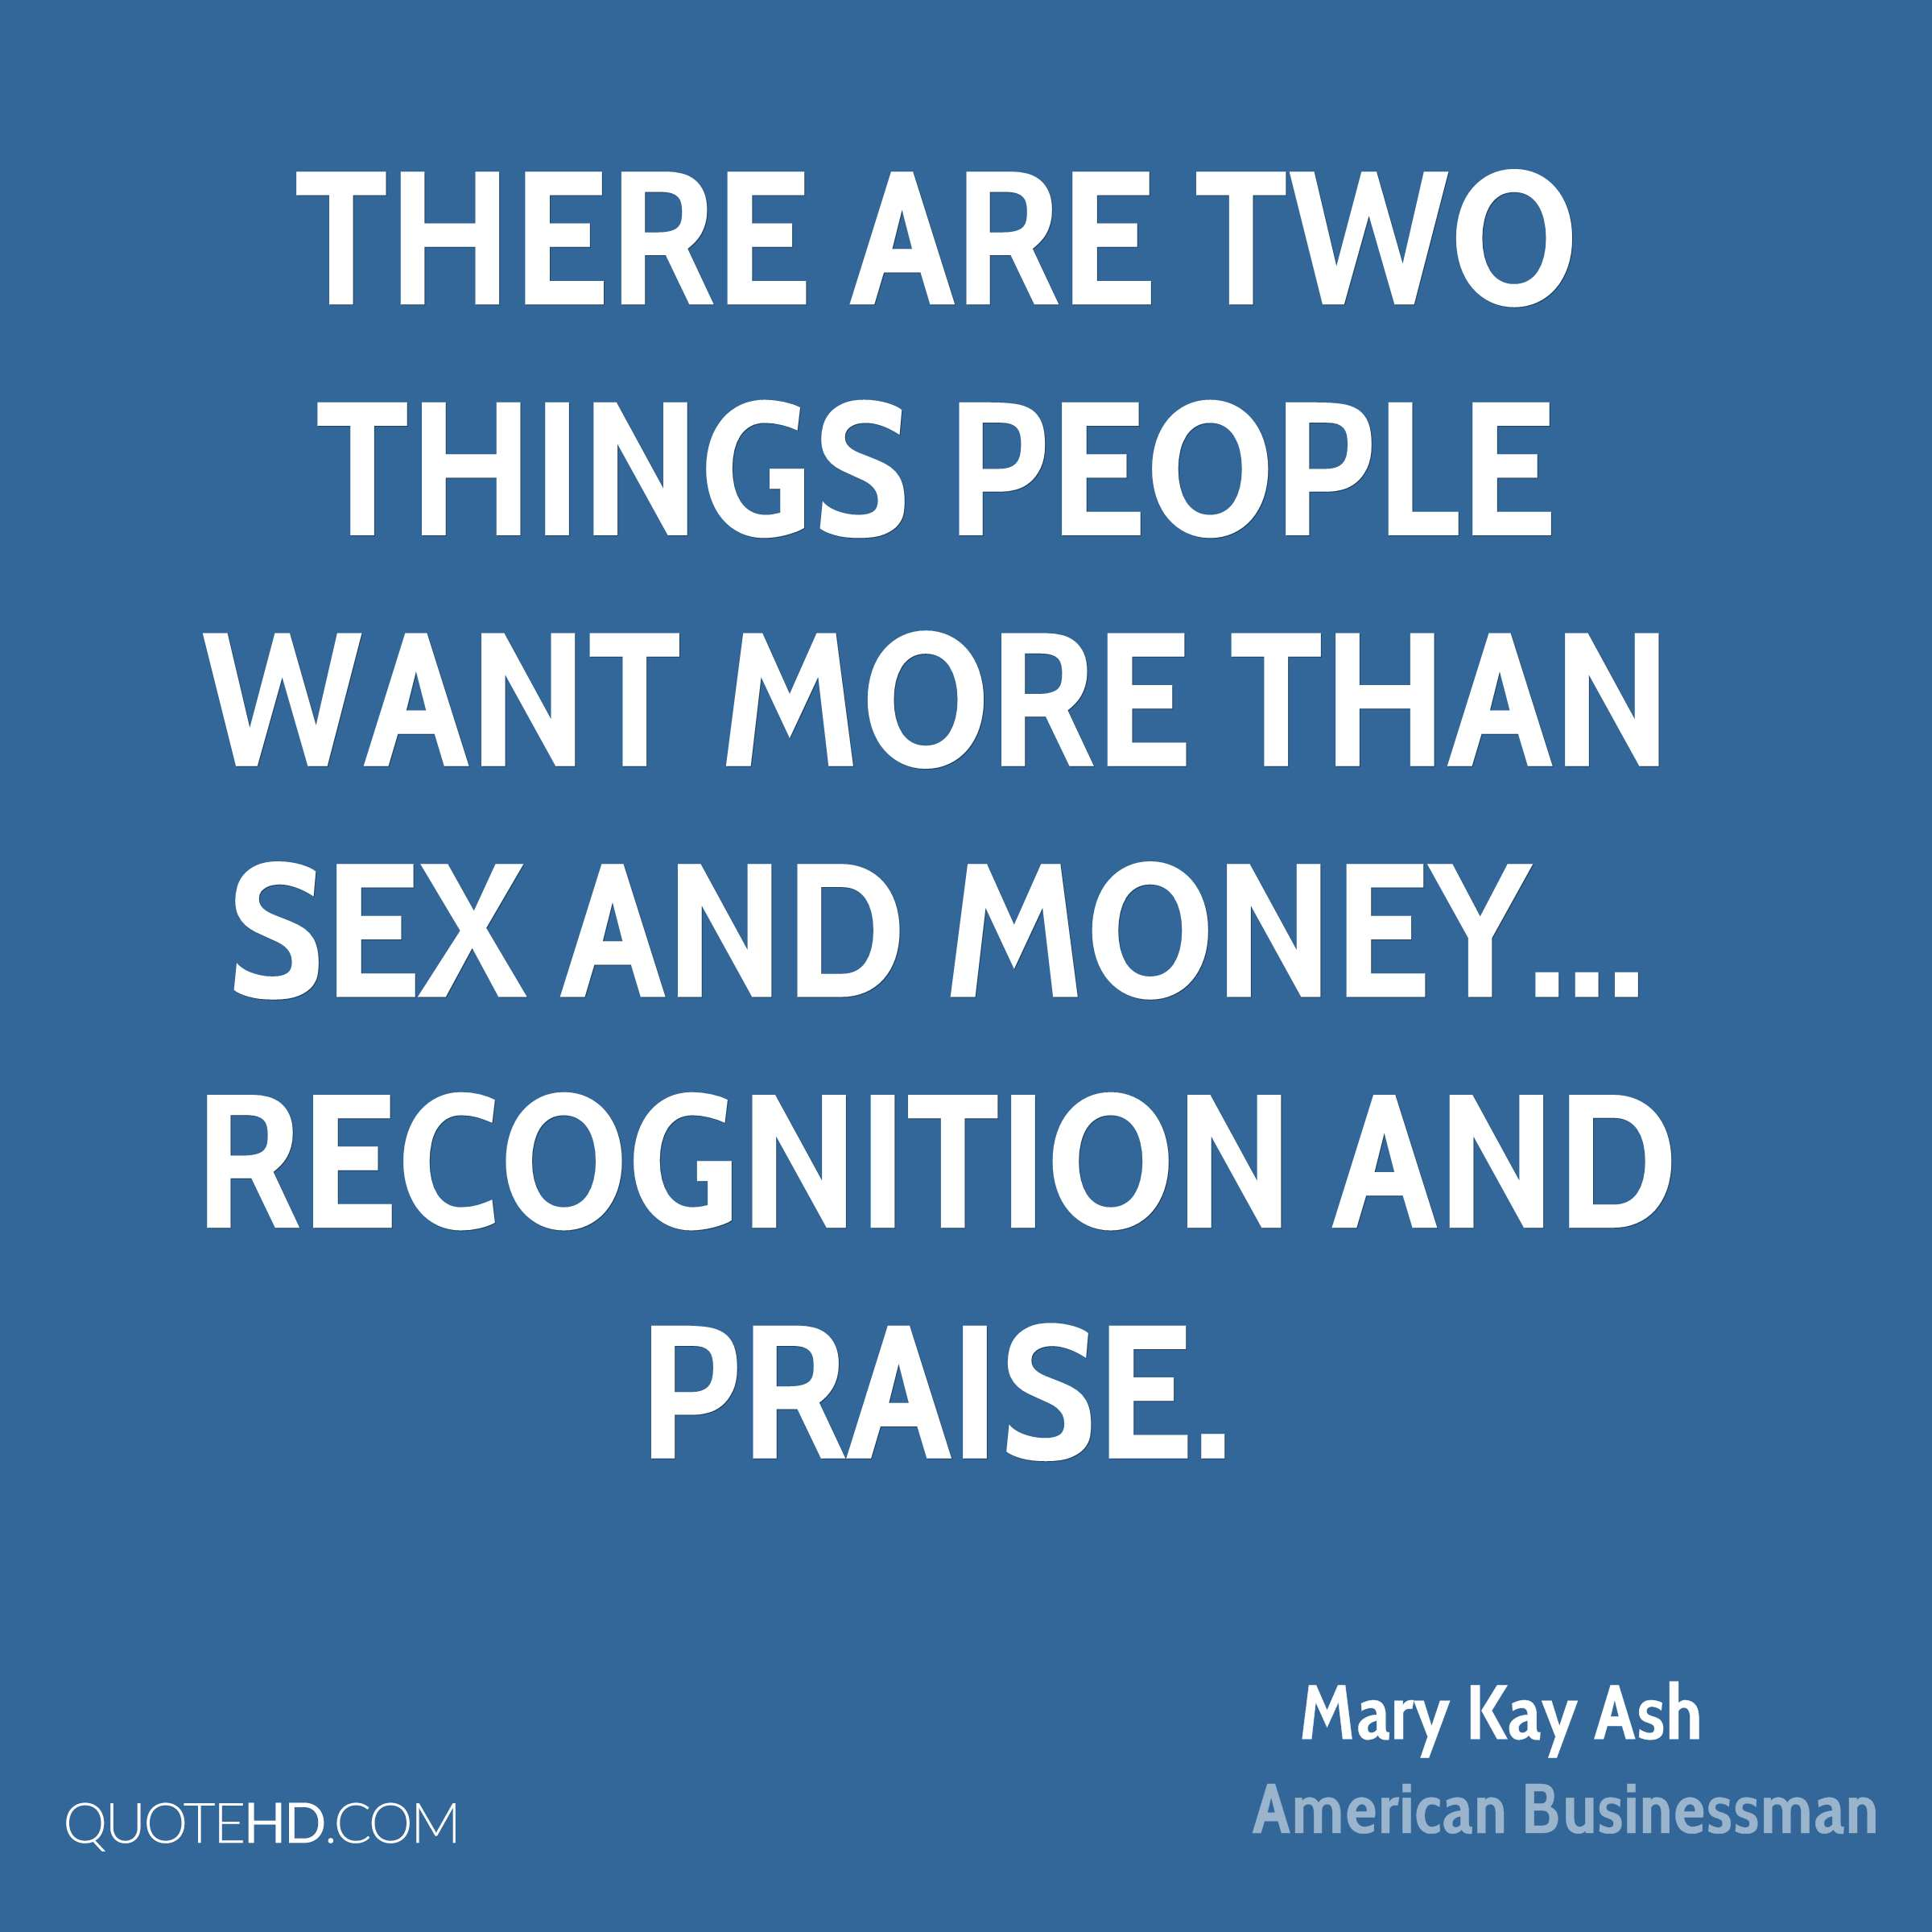 There are two things people want more than sex and money... recognition and praise.